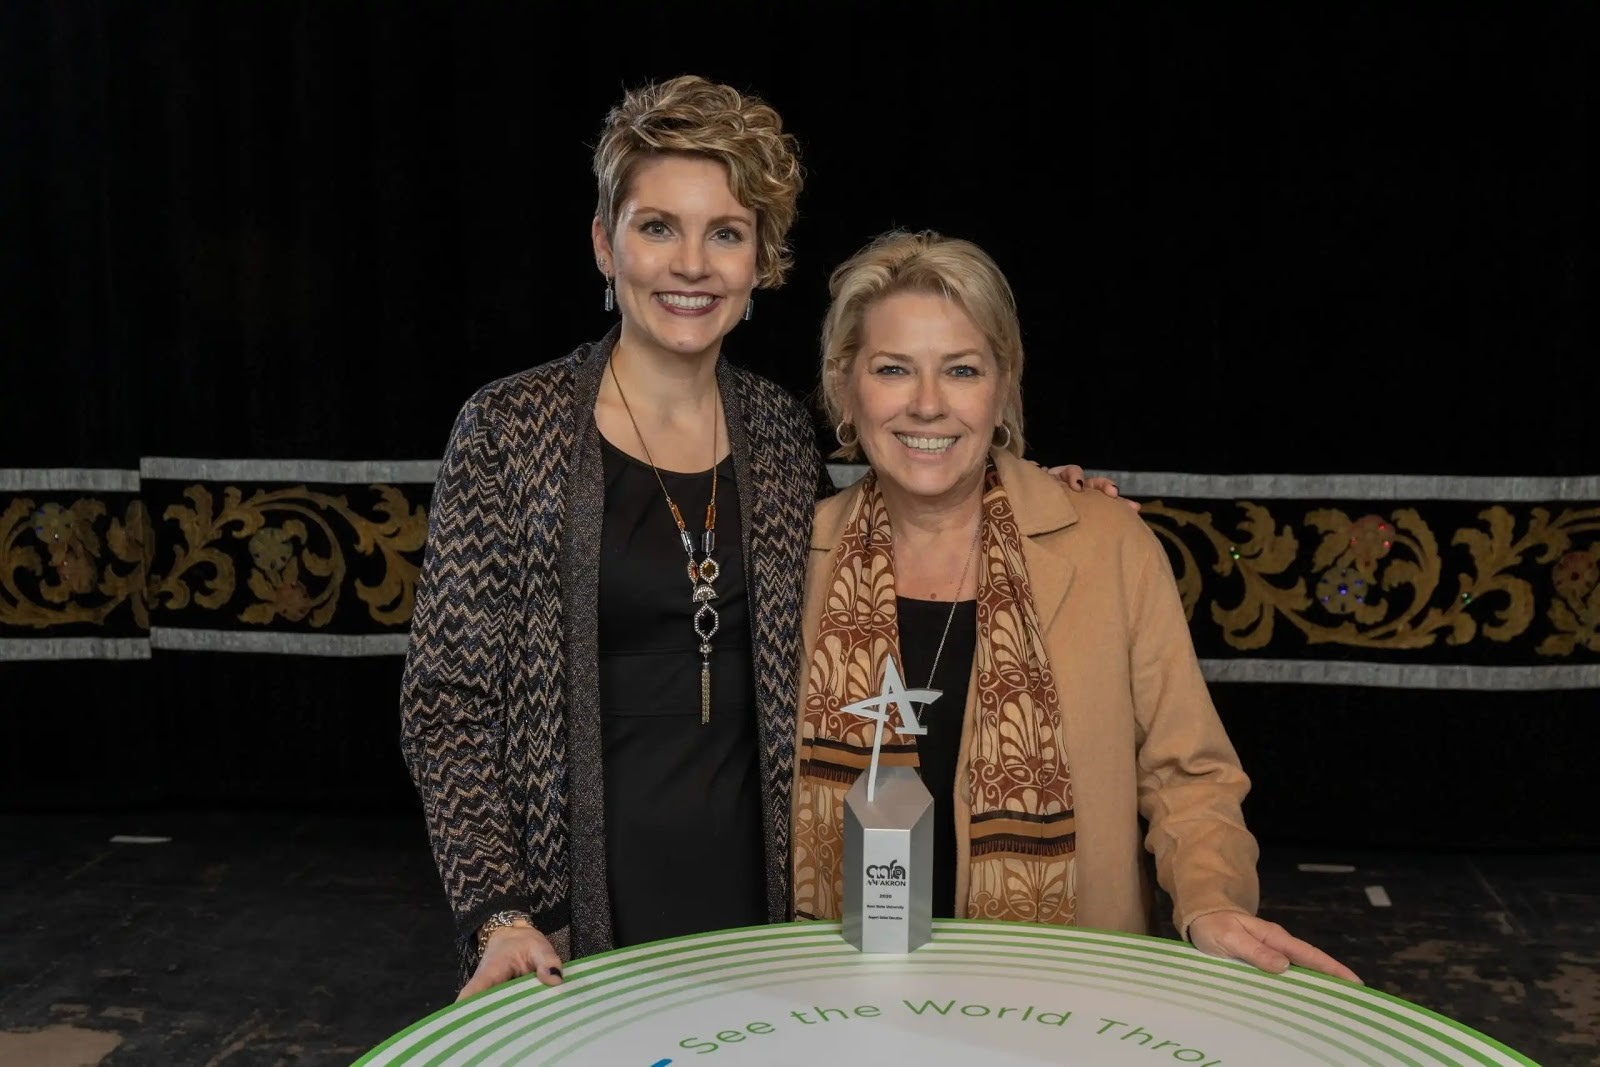 Leigh Greenfelder and Valoree Vargo smile after Kent State's Division of Institutional Advancement took home its first ADDY, a silver award, for the Support Global Education video project. (Photo credit: Smithberger Photography)